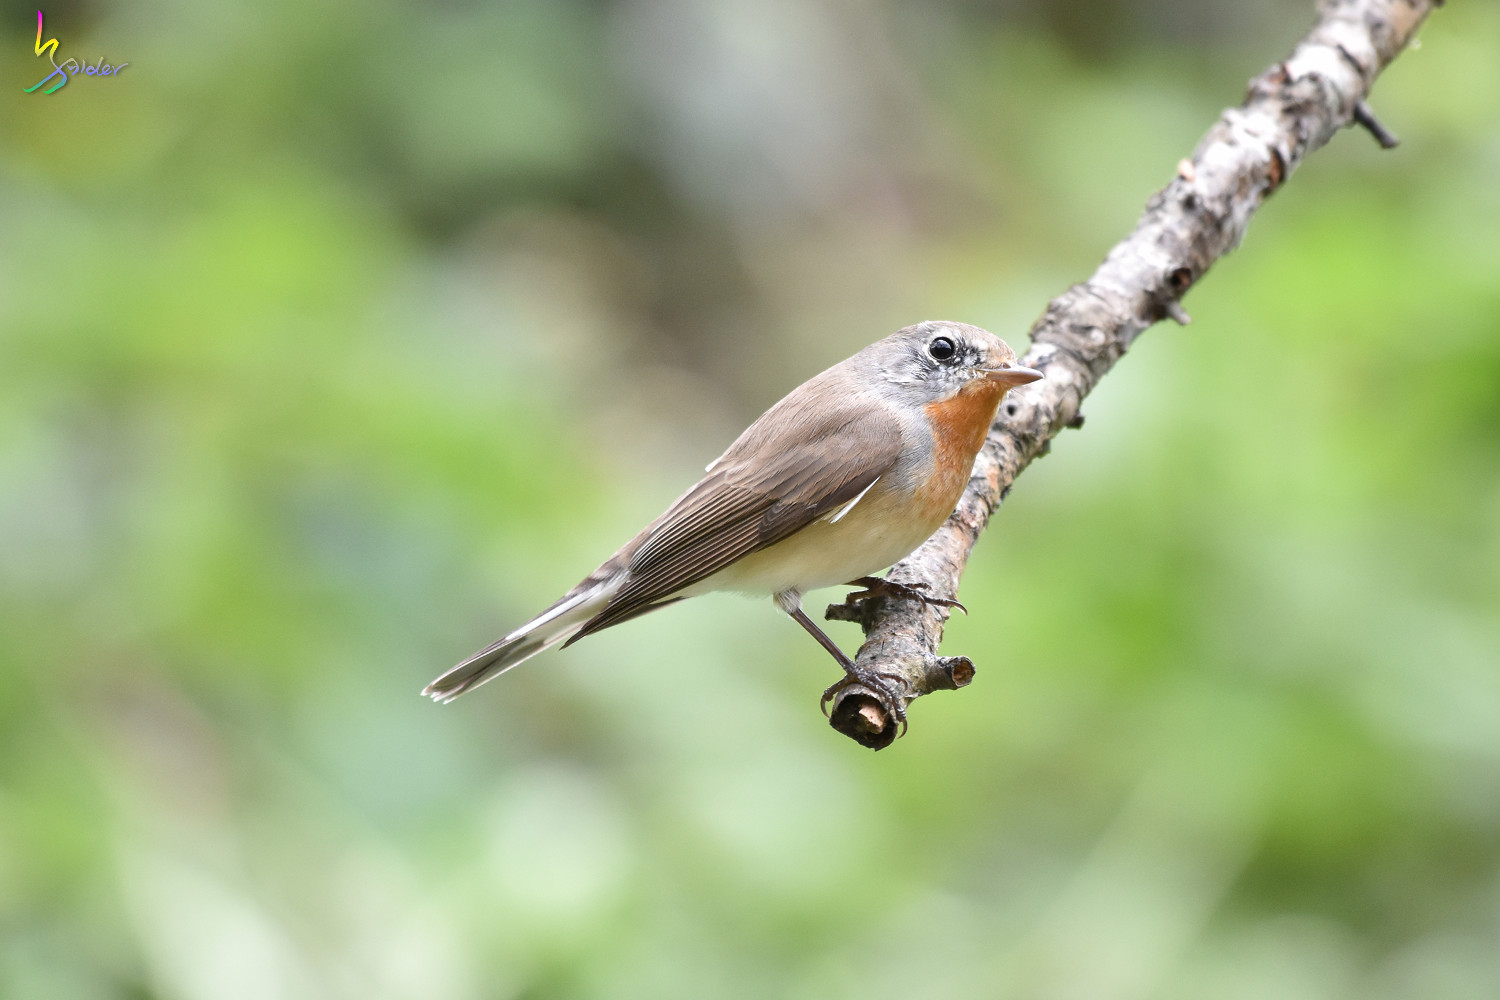 Red-breasted_Flycatcher_1184